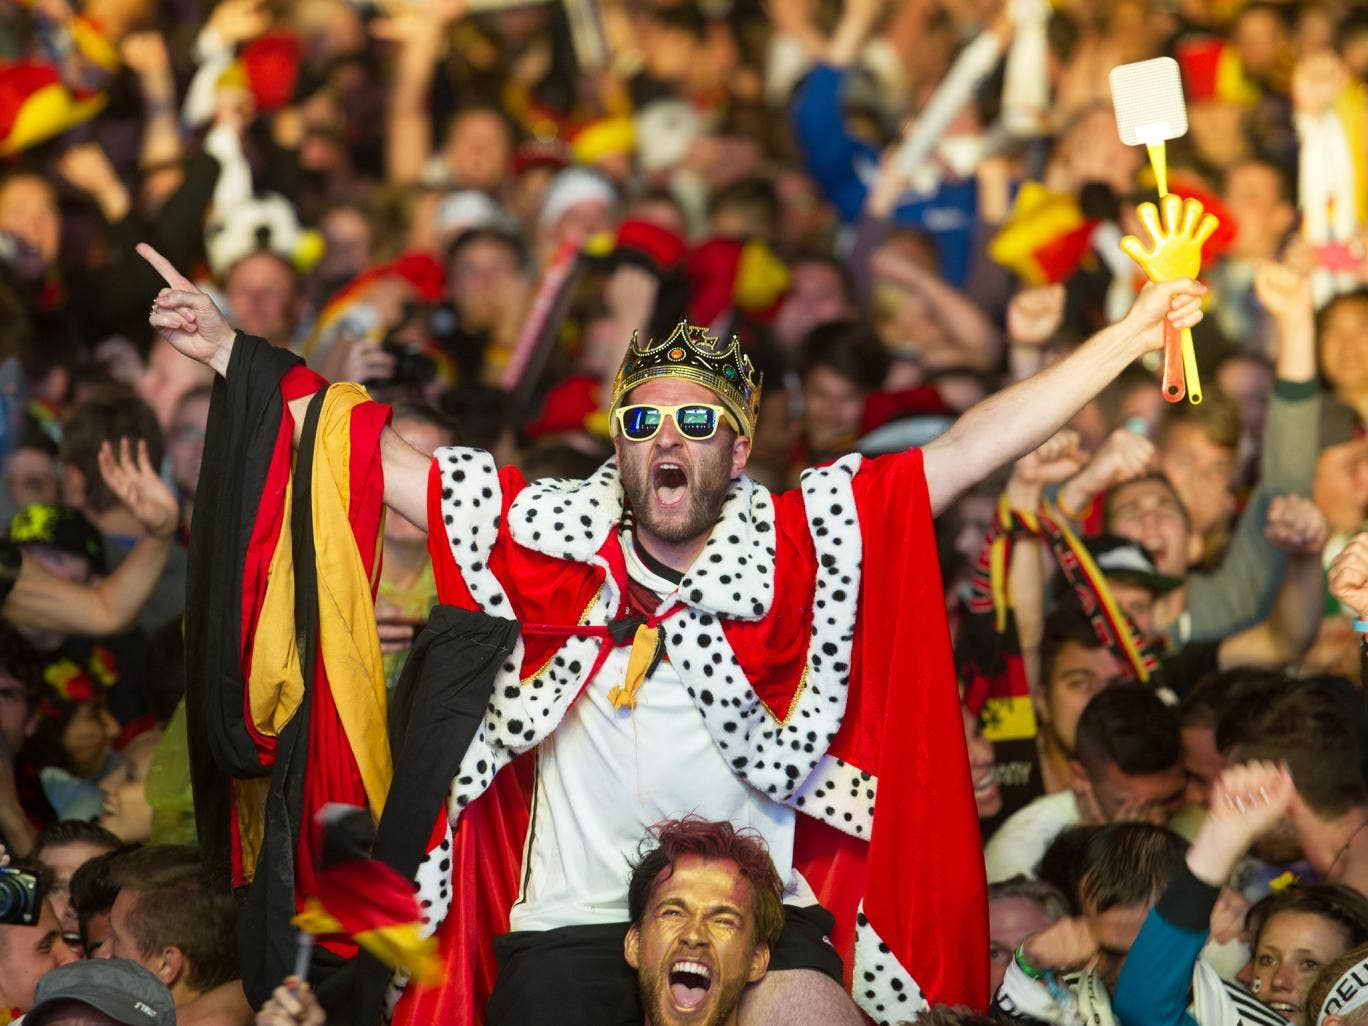 German soccer fans react after the deciding goal  for Germany in the final of  the Brazil World Cup 2014 between Germany and Argentina played in Rio de Janeiro, Brazil, at a public viewing  area  called 'Fan Mile' in Berlin